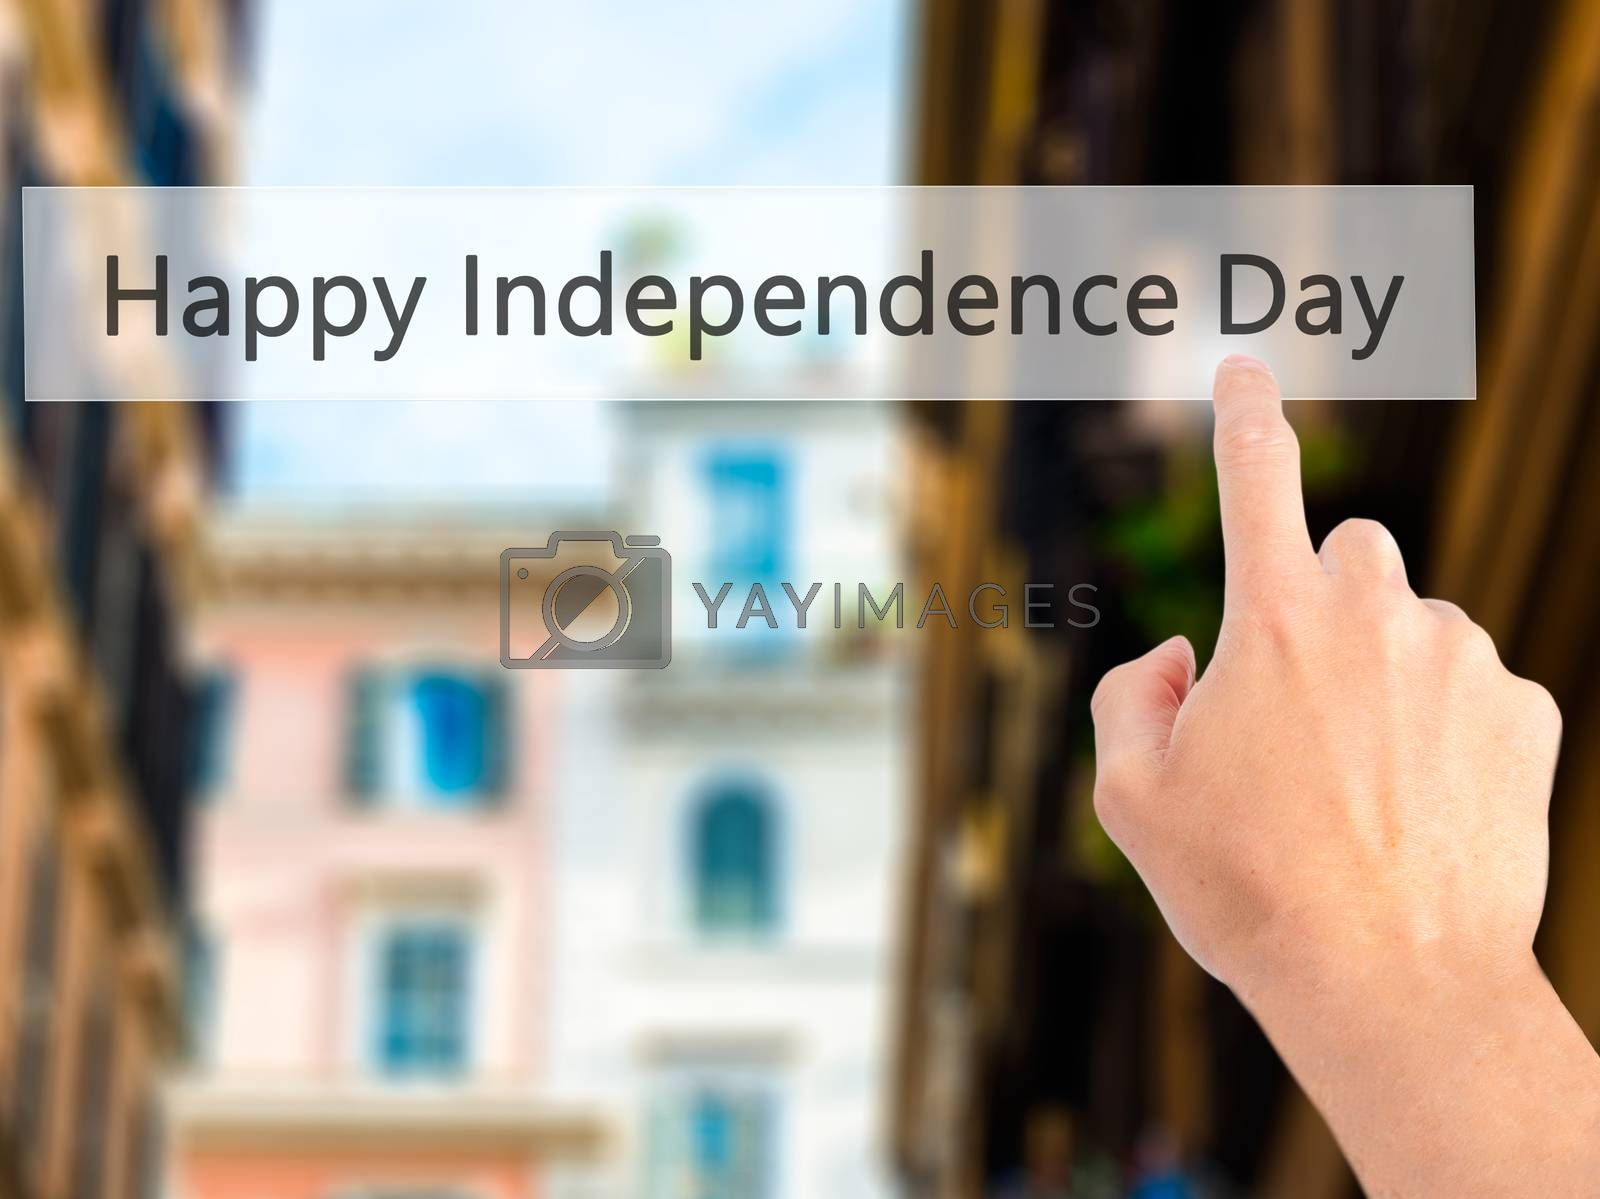 happy Independence Day - Hand pressing a button on blurred backg by netsay.net